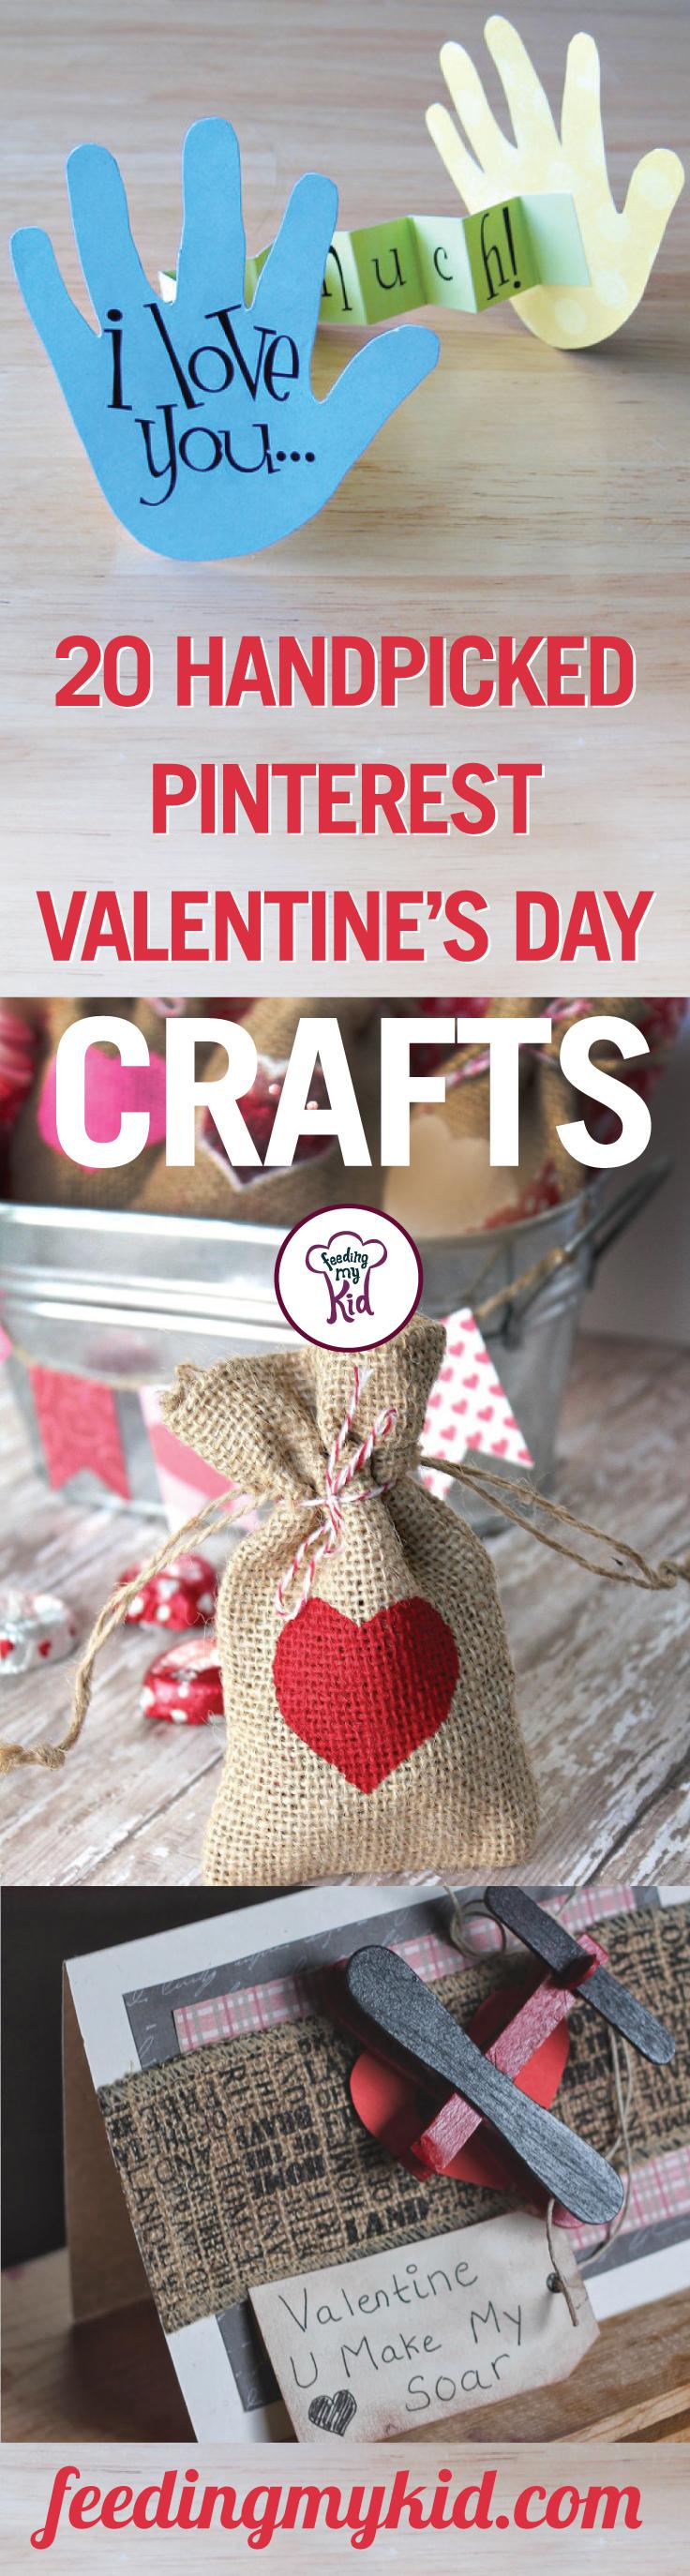 20 Handpicked Pinterest Valentine's Day Crafts - This Valentine's Day, why don't you do arts and crafts with your kids! Try these amazingly simple Valentine's Day crafts that we handpicked just for you; from valentine's day wind chimes to a little minion. These crafts are perfect to make with your kids!